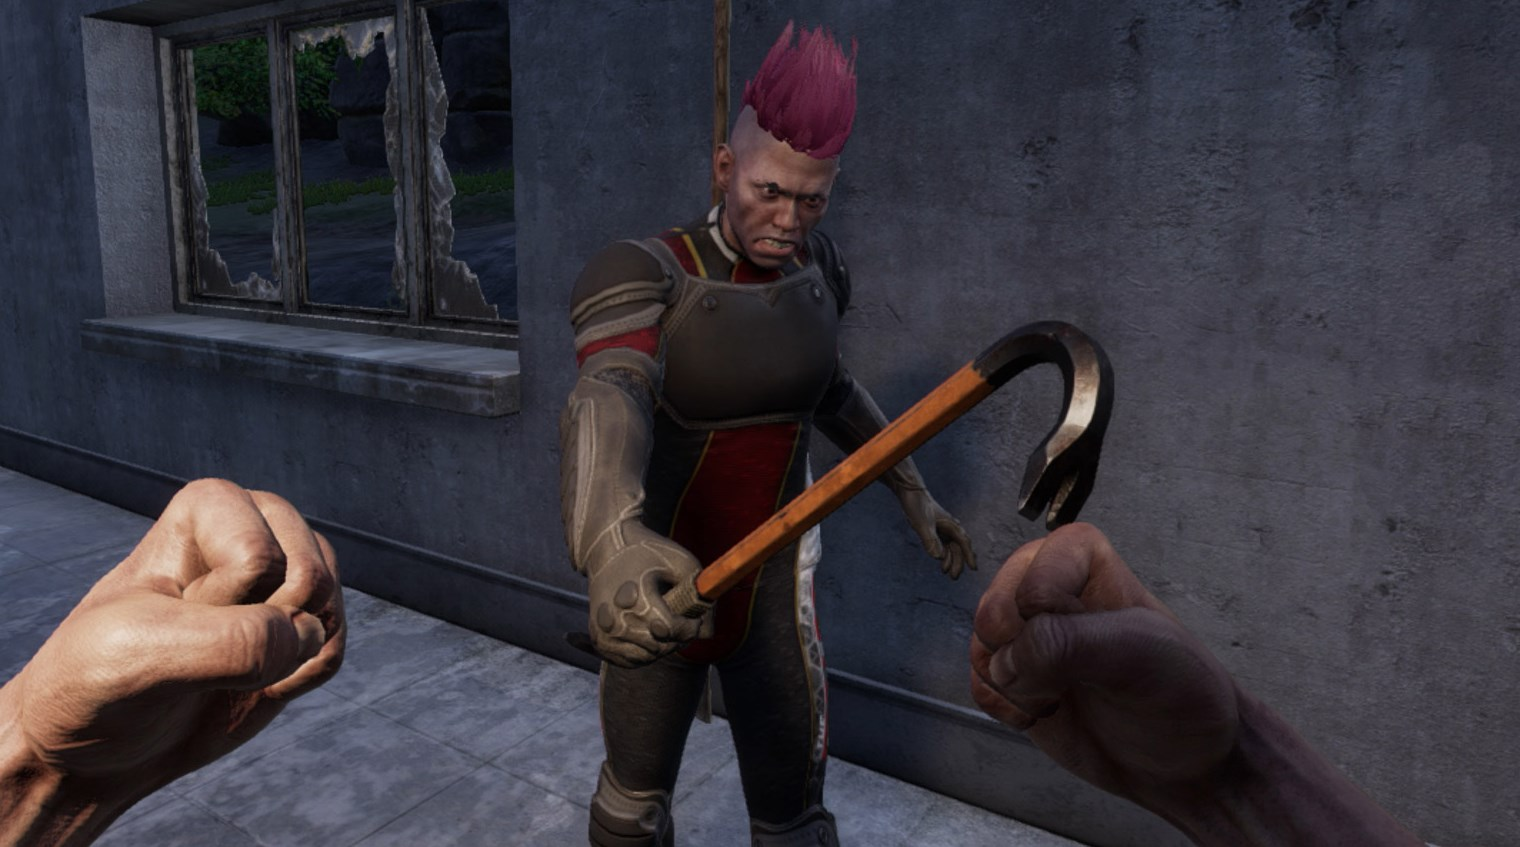 The Culling 2 is being closed, the original will be rebooted and